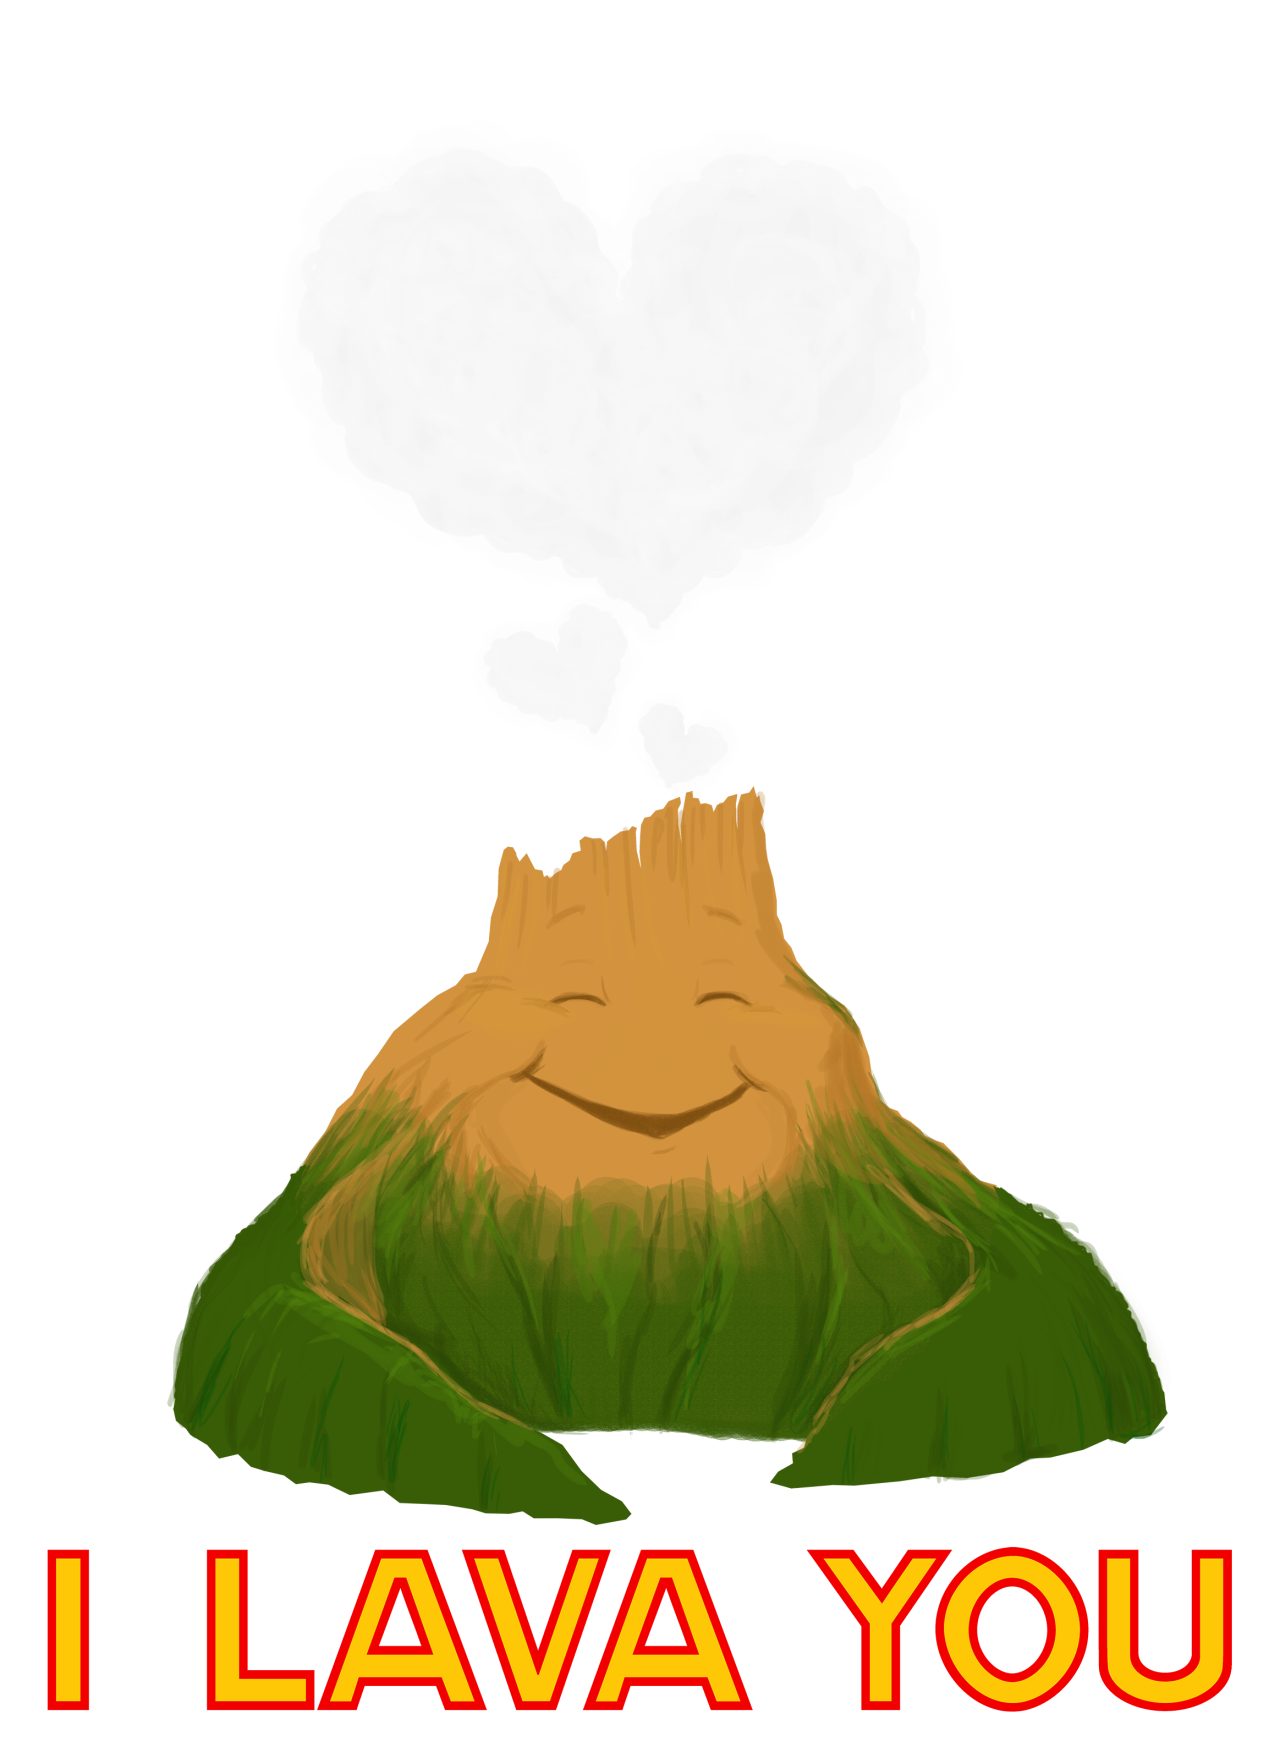 Volcano cartoon png. Only pixar can make